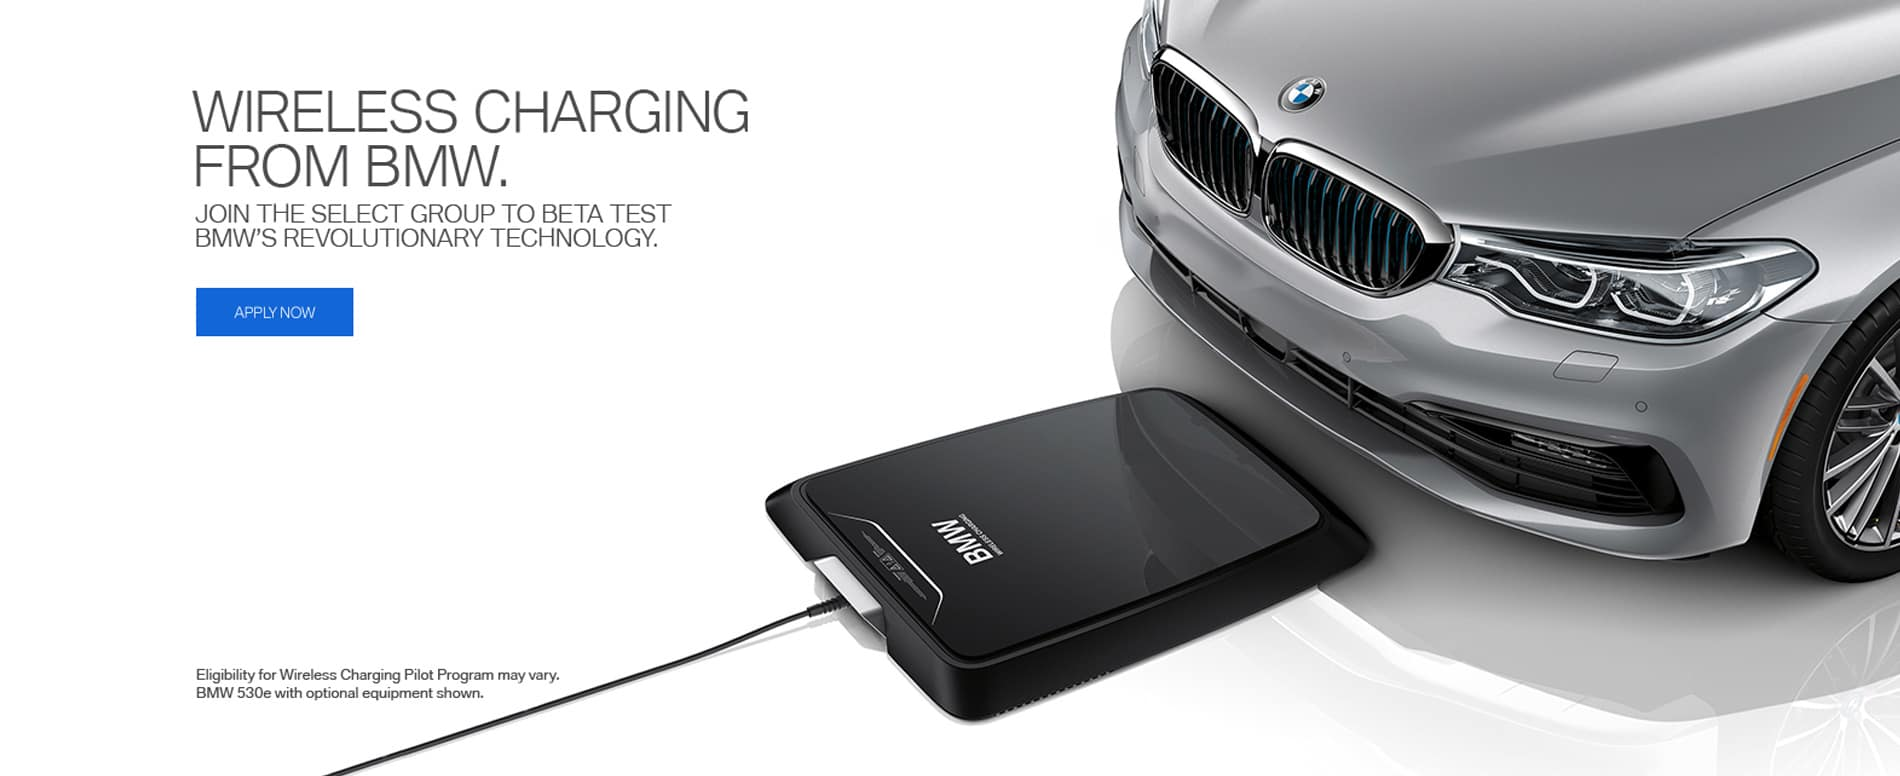 east bay bmw wireless charger